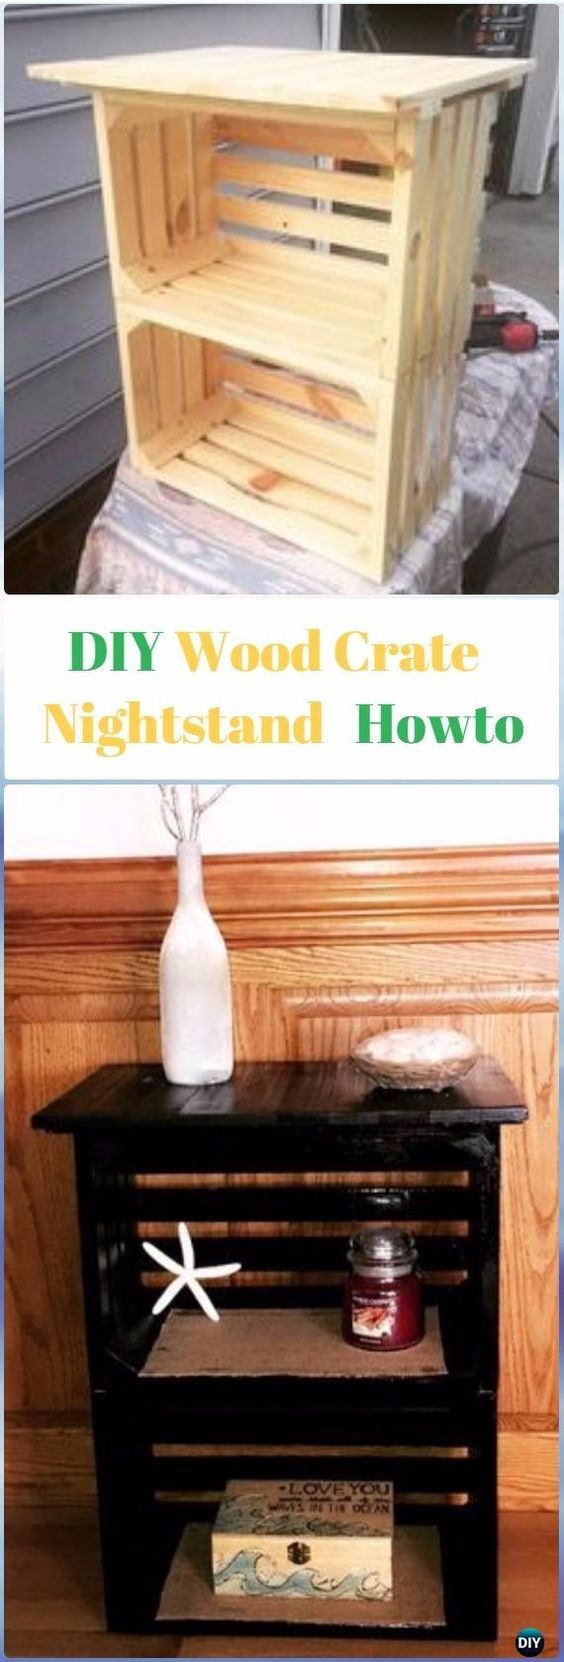 wood crate furniture diy. DIY Wood Crate Nightstand Instructions Video- Furniture Ideas Projects Diy E